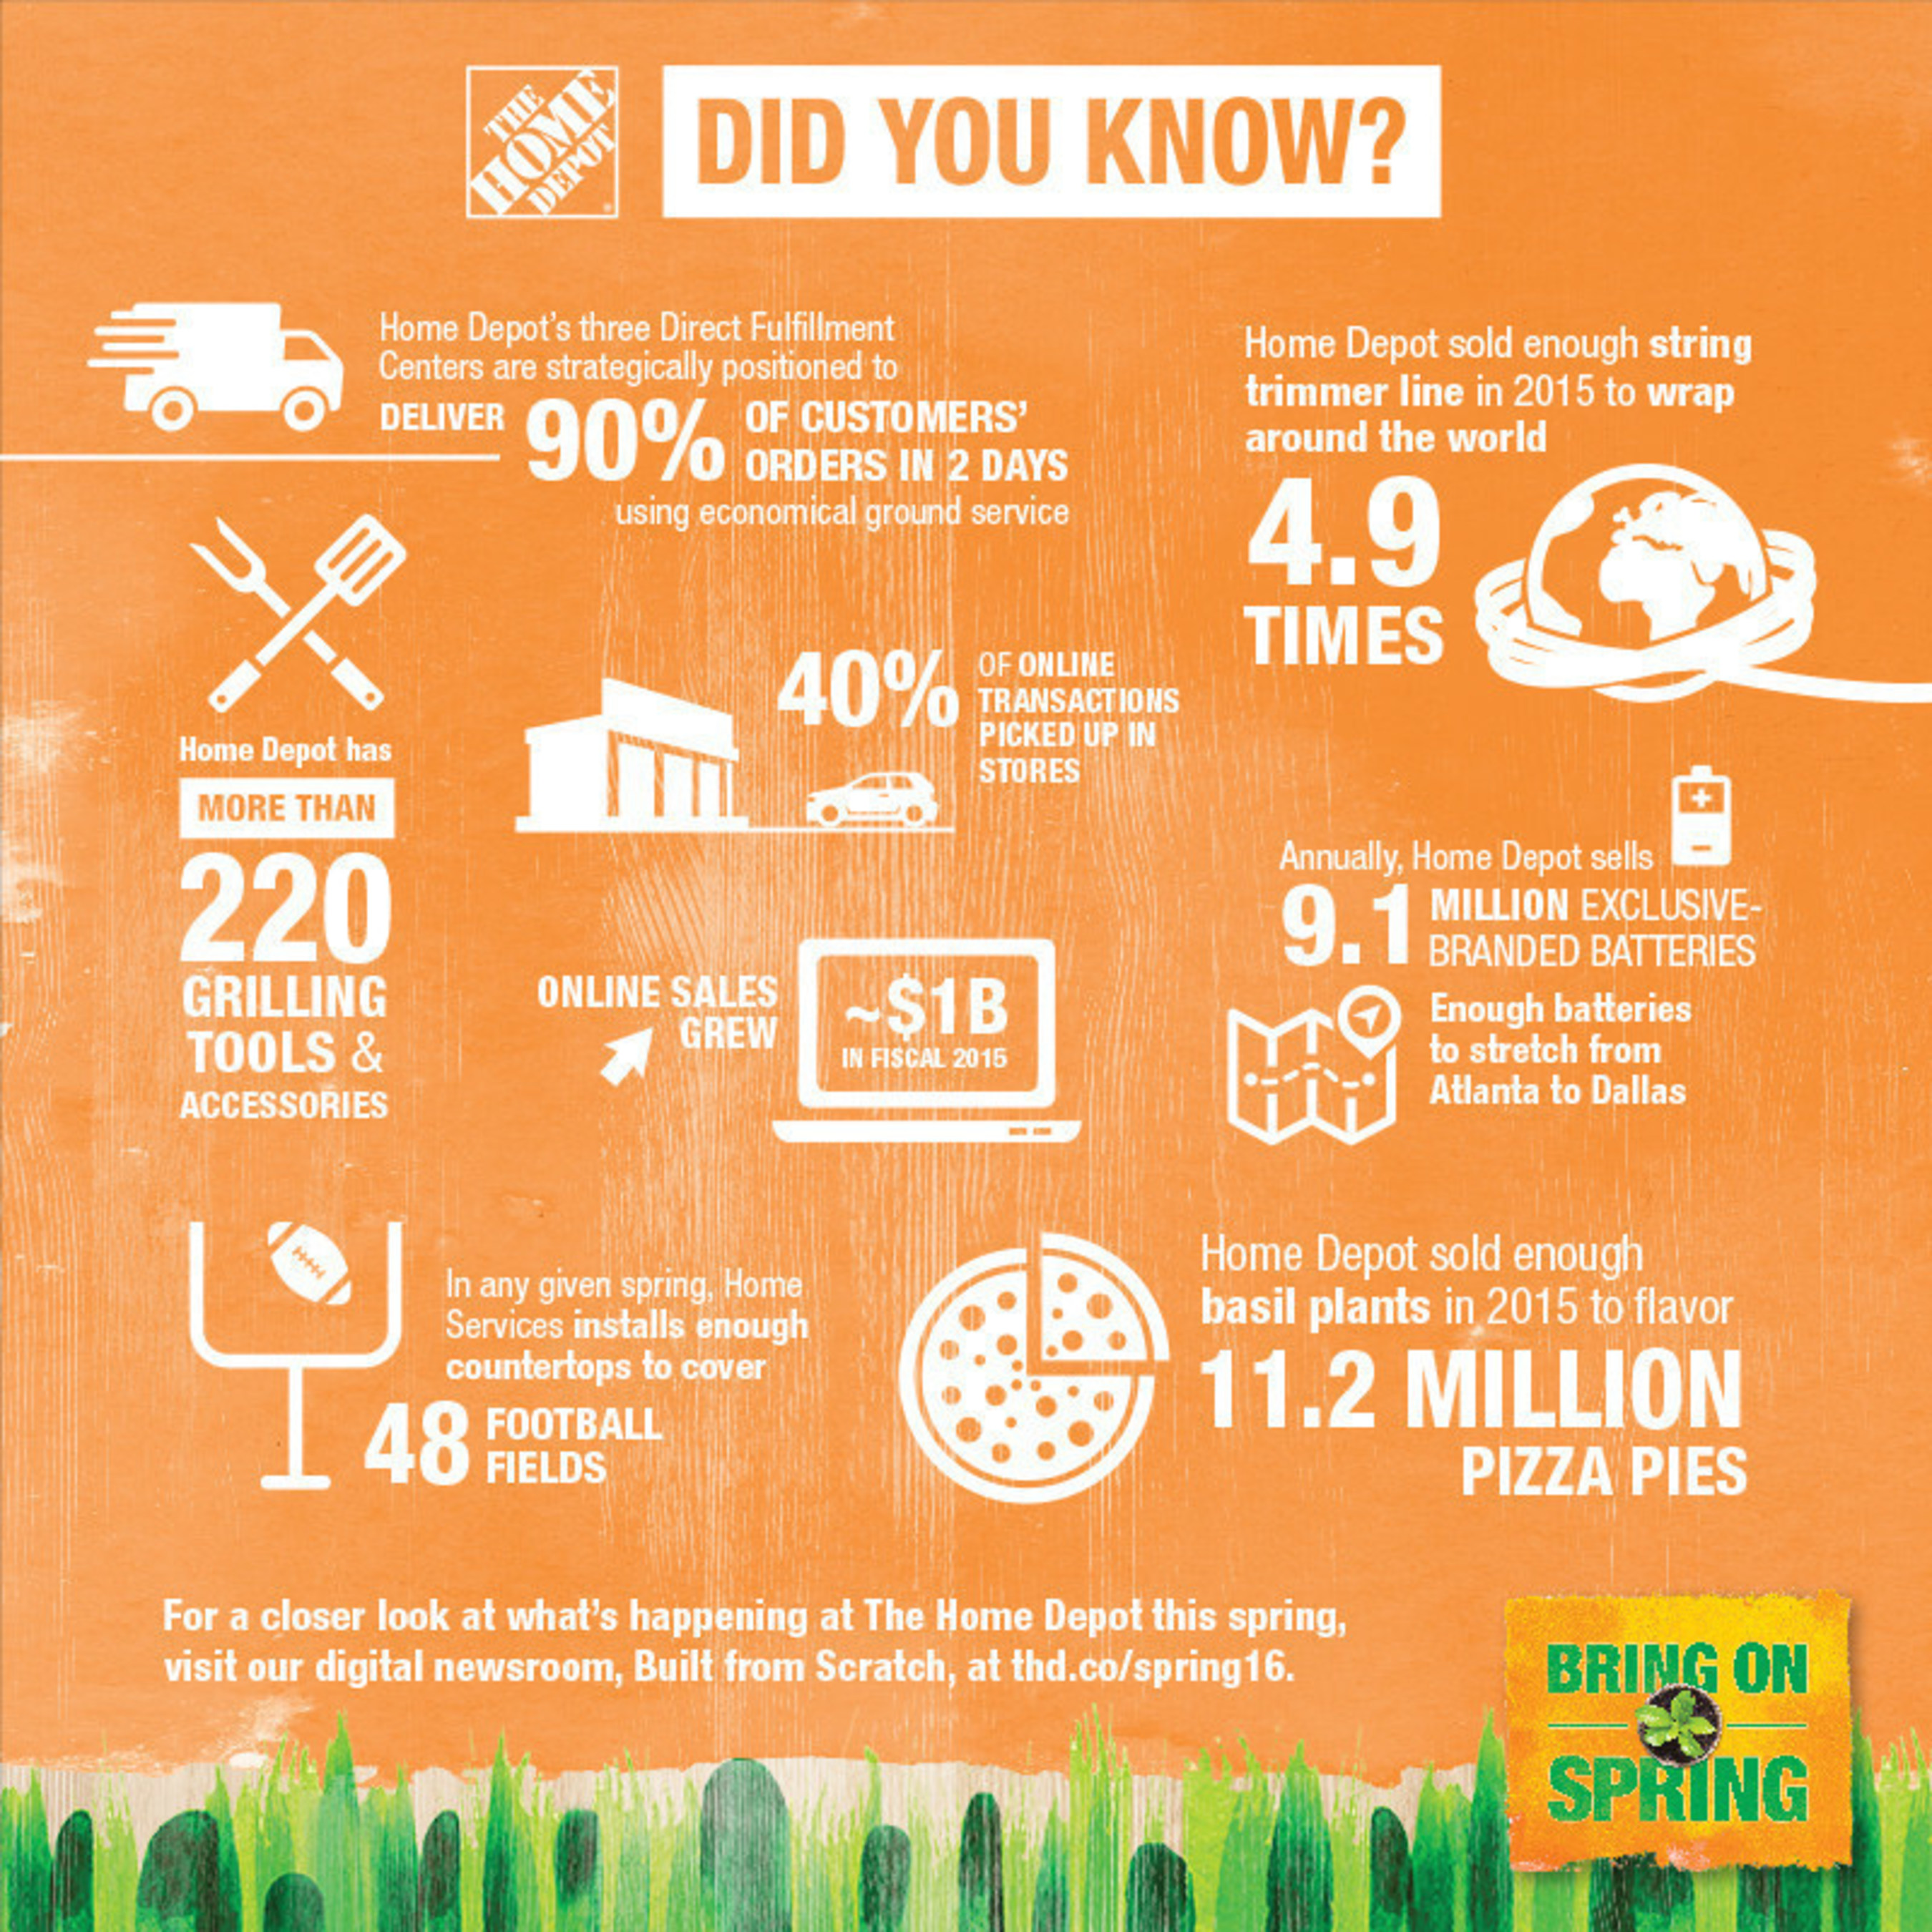 For The Home Depot, spring is synonymous with home improvement. Check out some of this season's most interesting stats from the world's largest home improvement retailer. #bringonspring